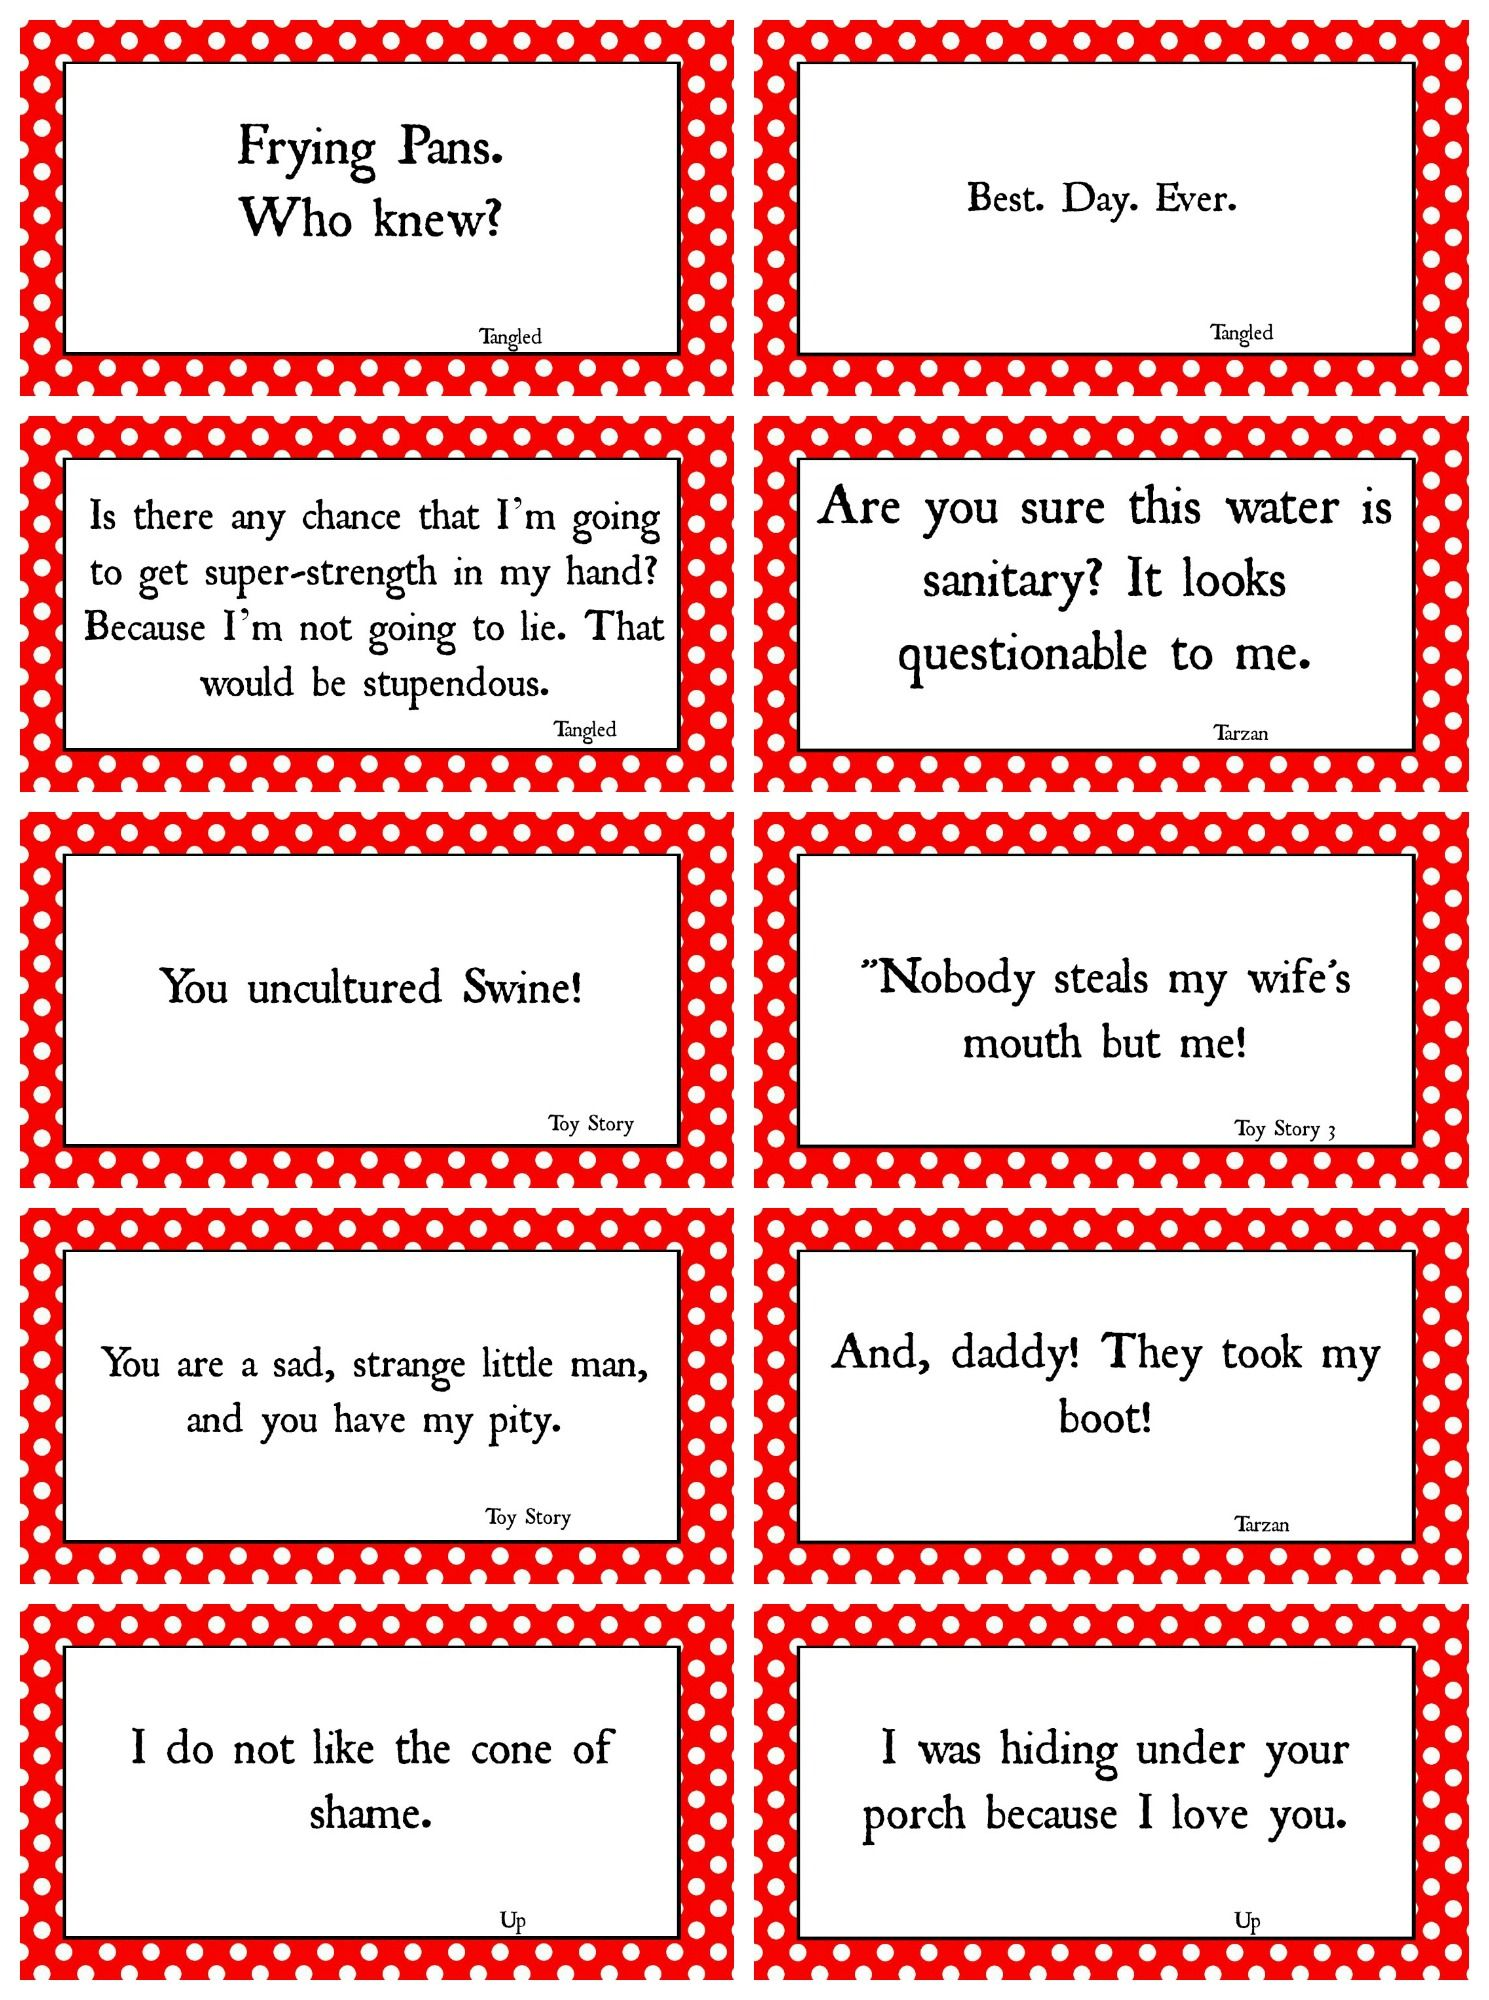 Disney Movie Quotes Game With Free Printables